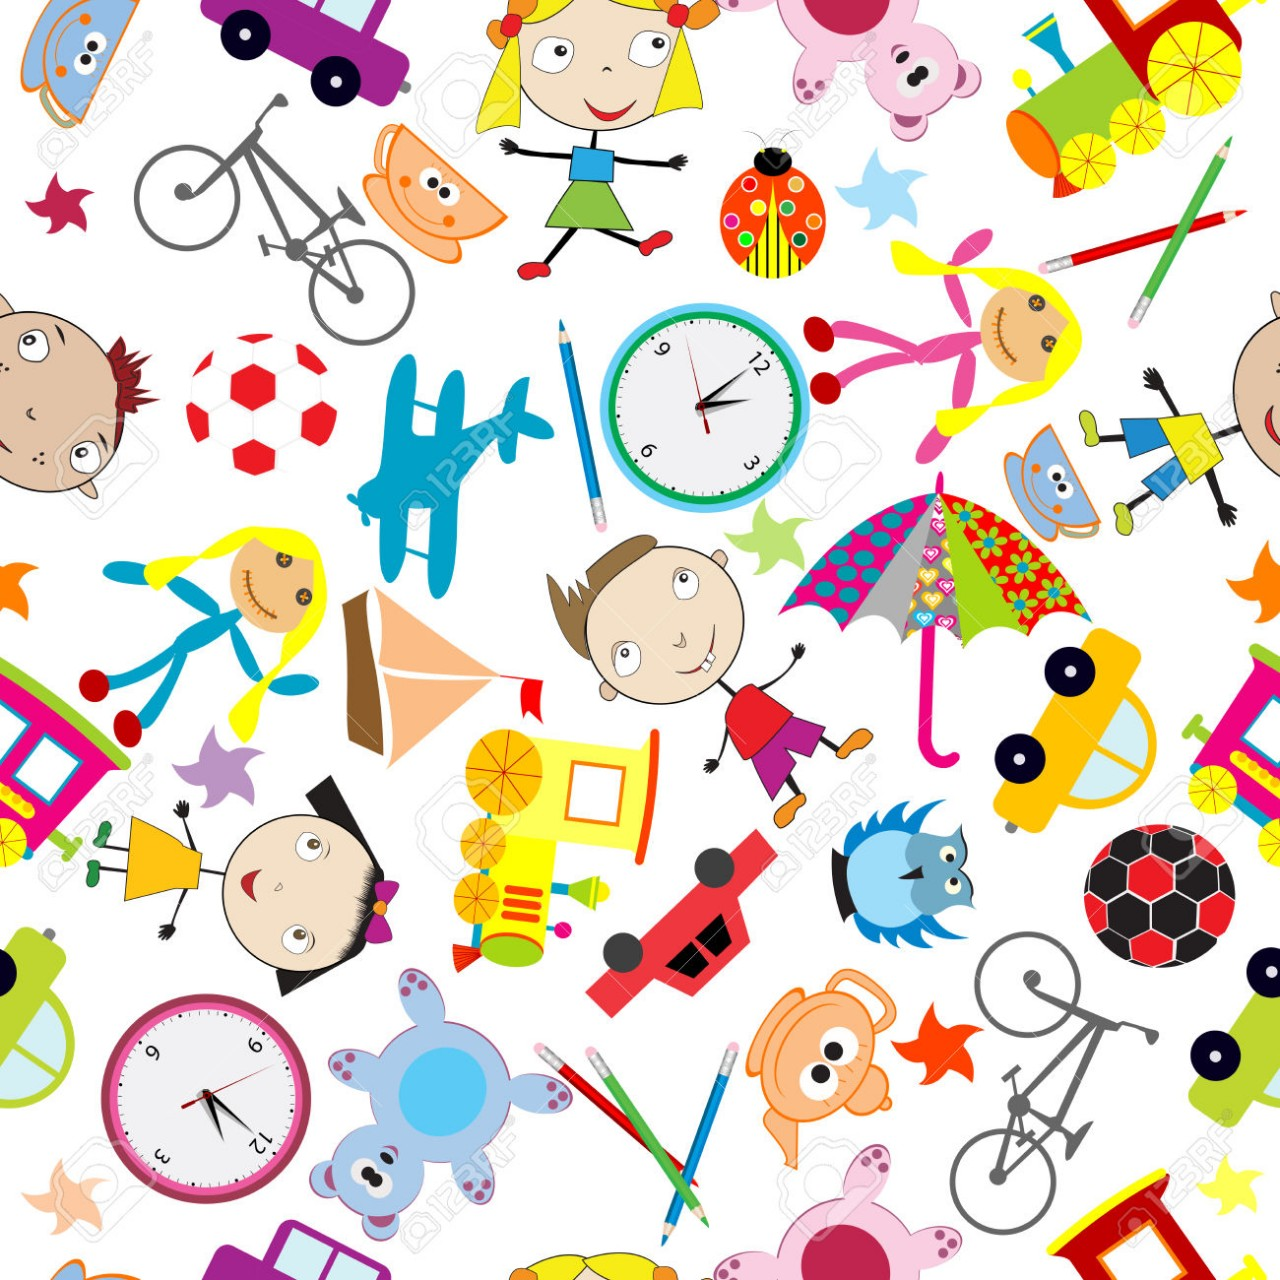 26788153-Seamless-pattern-with-toys-background-for-kids-Stock-Photo